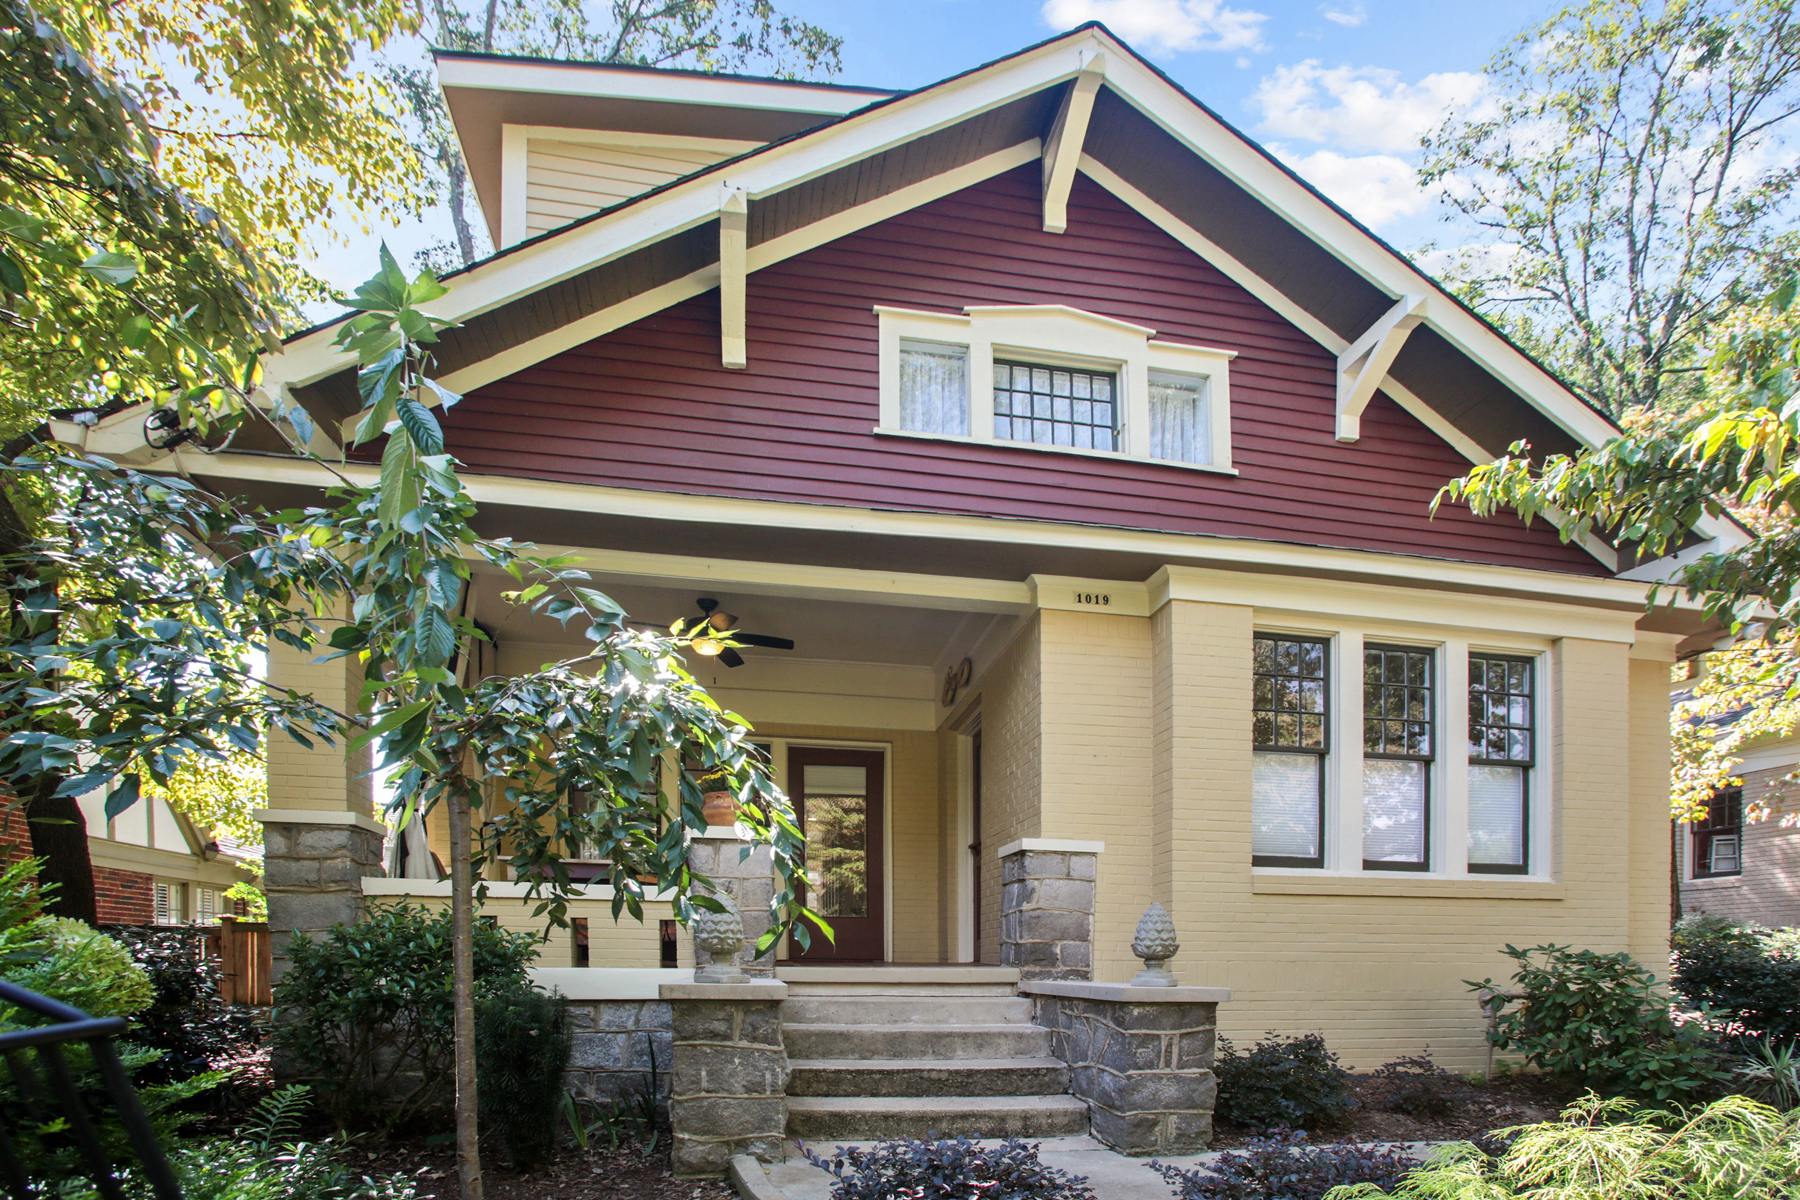 Property For Sale at Renovated Virginia Highland Home With Carriage House